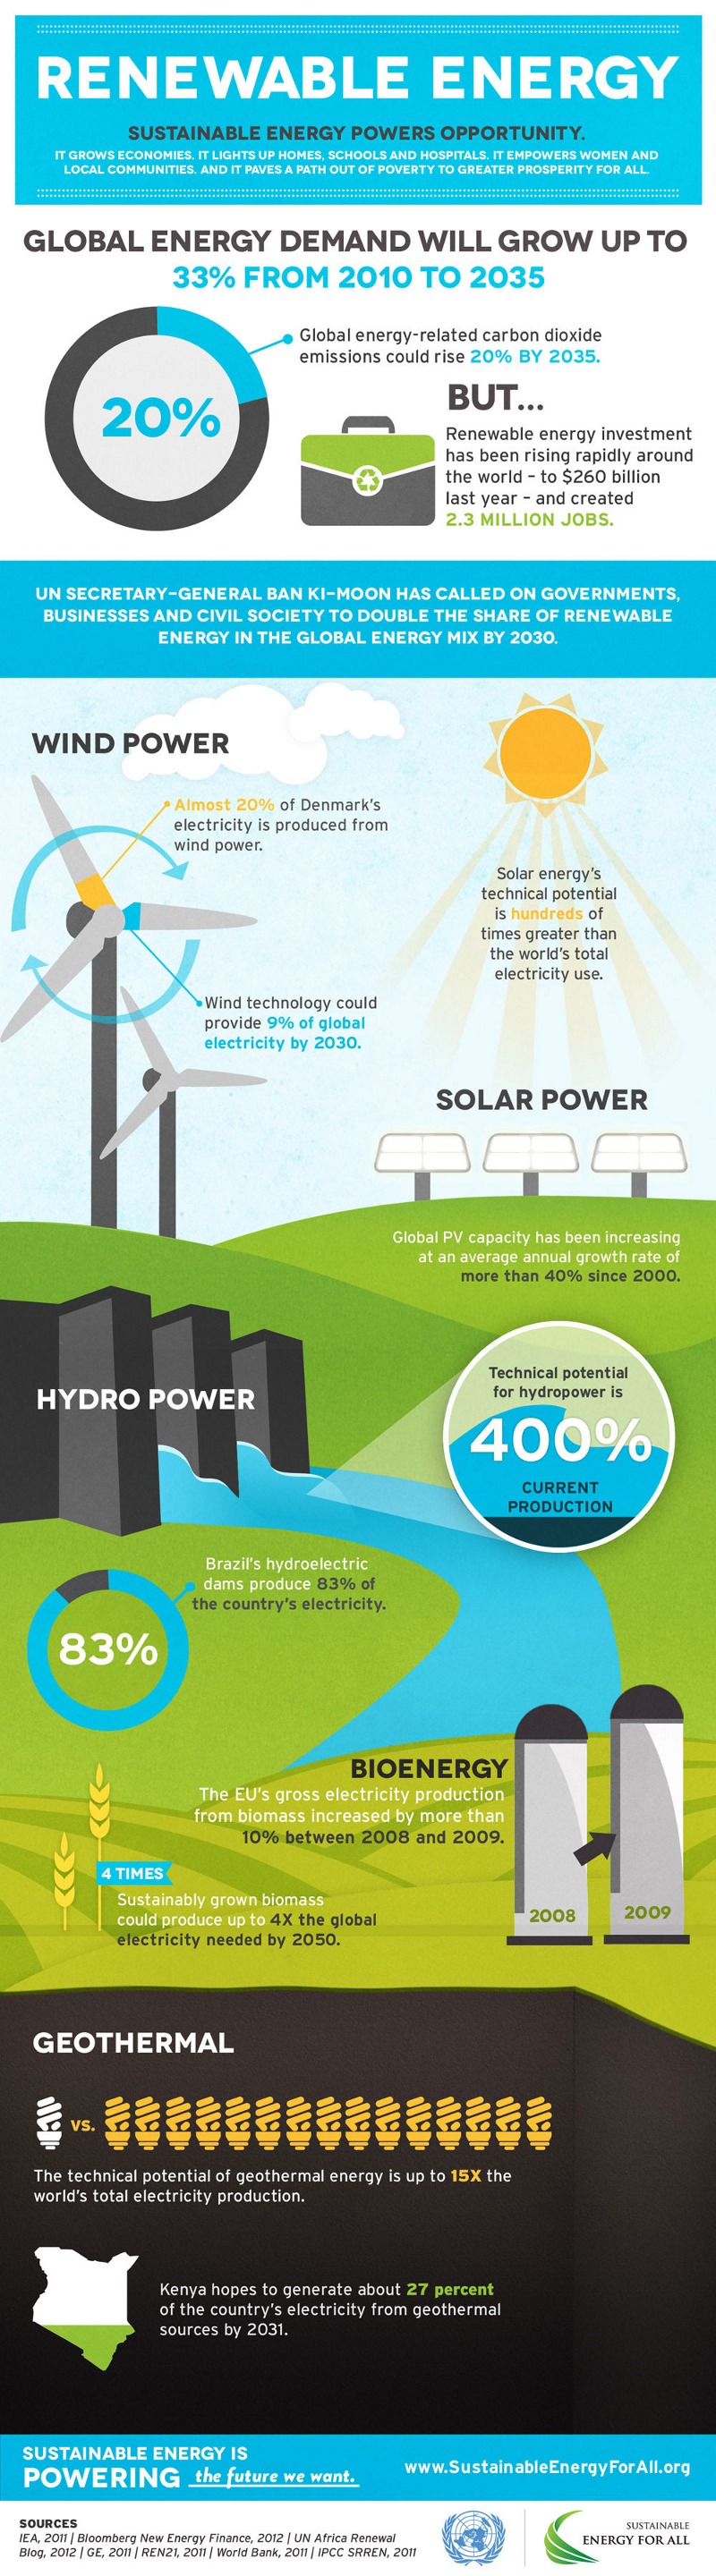 Sustainable Energy in the Future